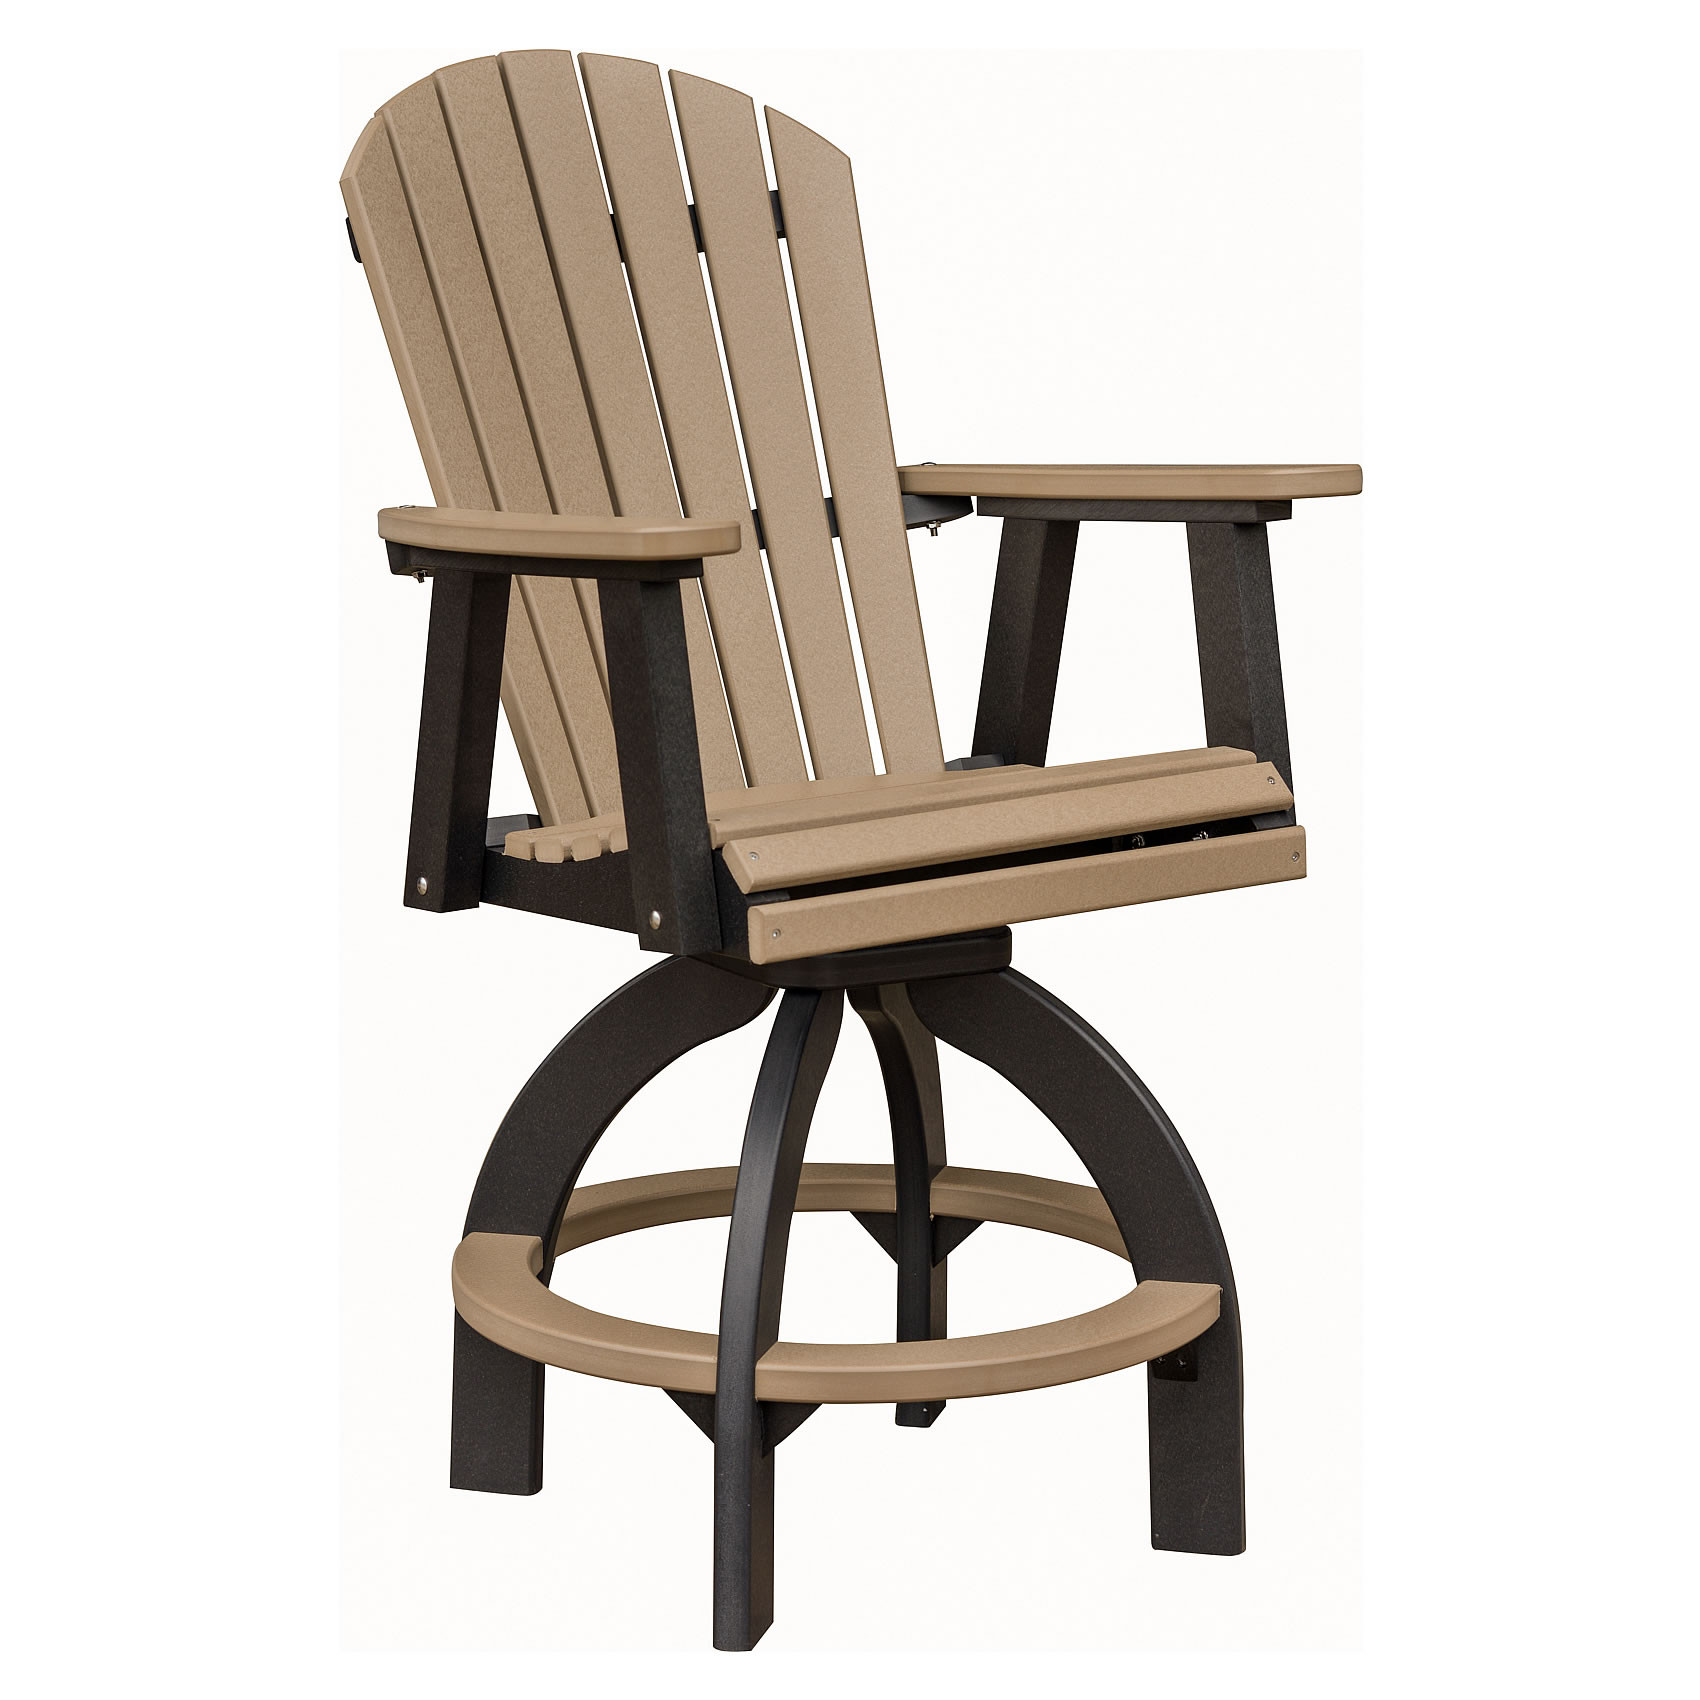 Poly Lumber & POLYWOOD Bar Chairs